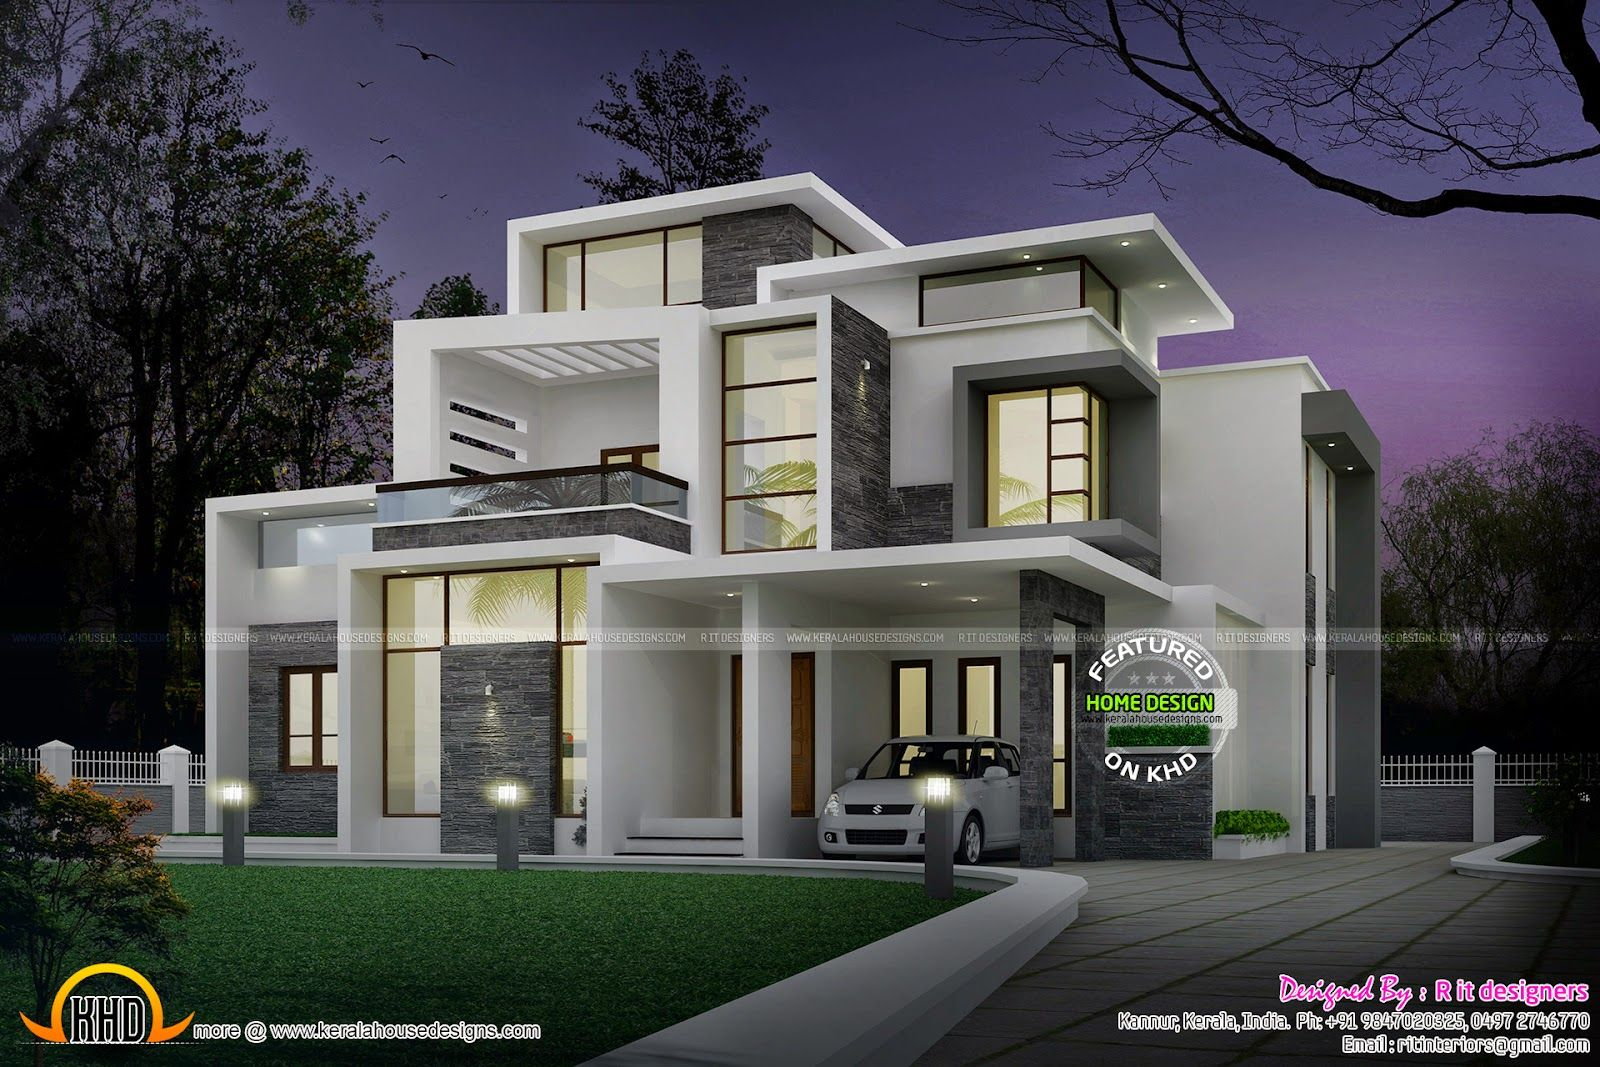 Grand contemporary home design kerala home design and for New model contemporary house